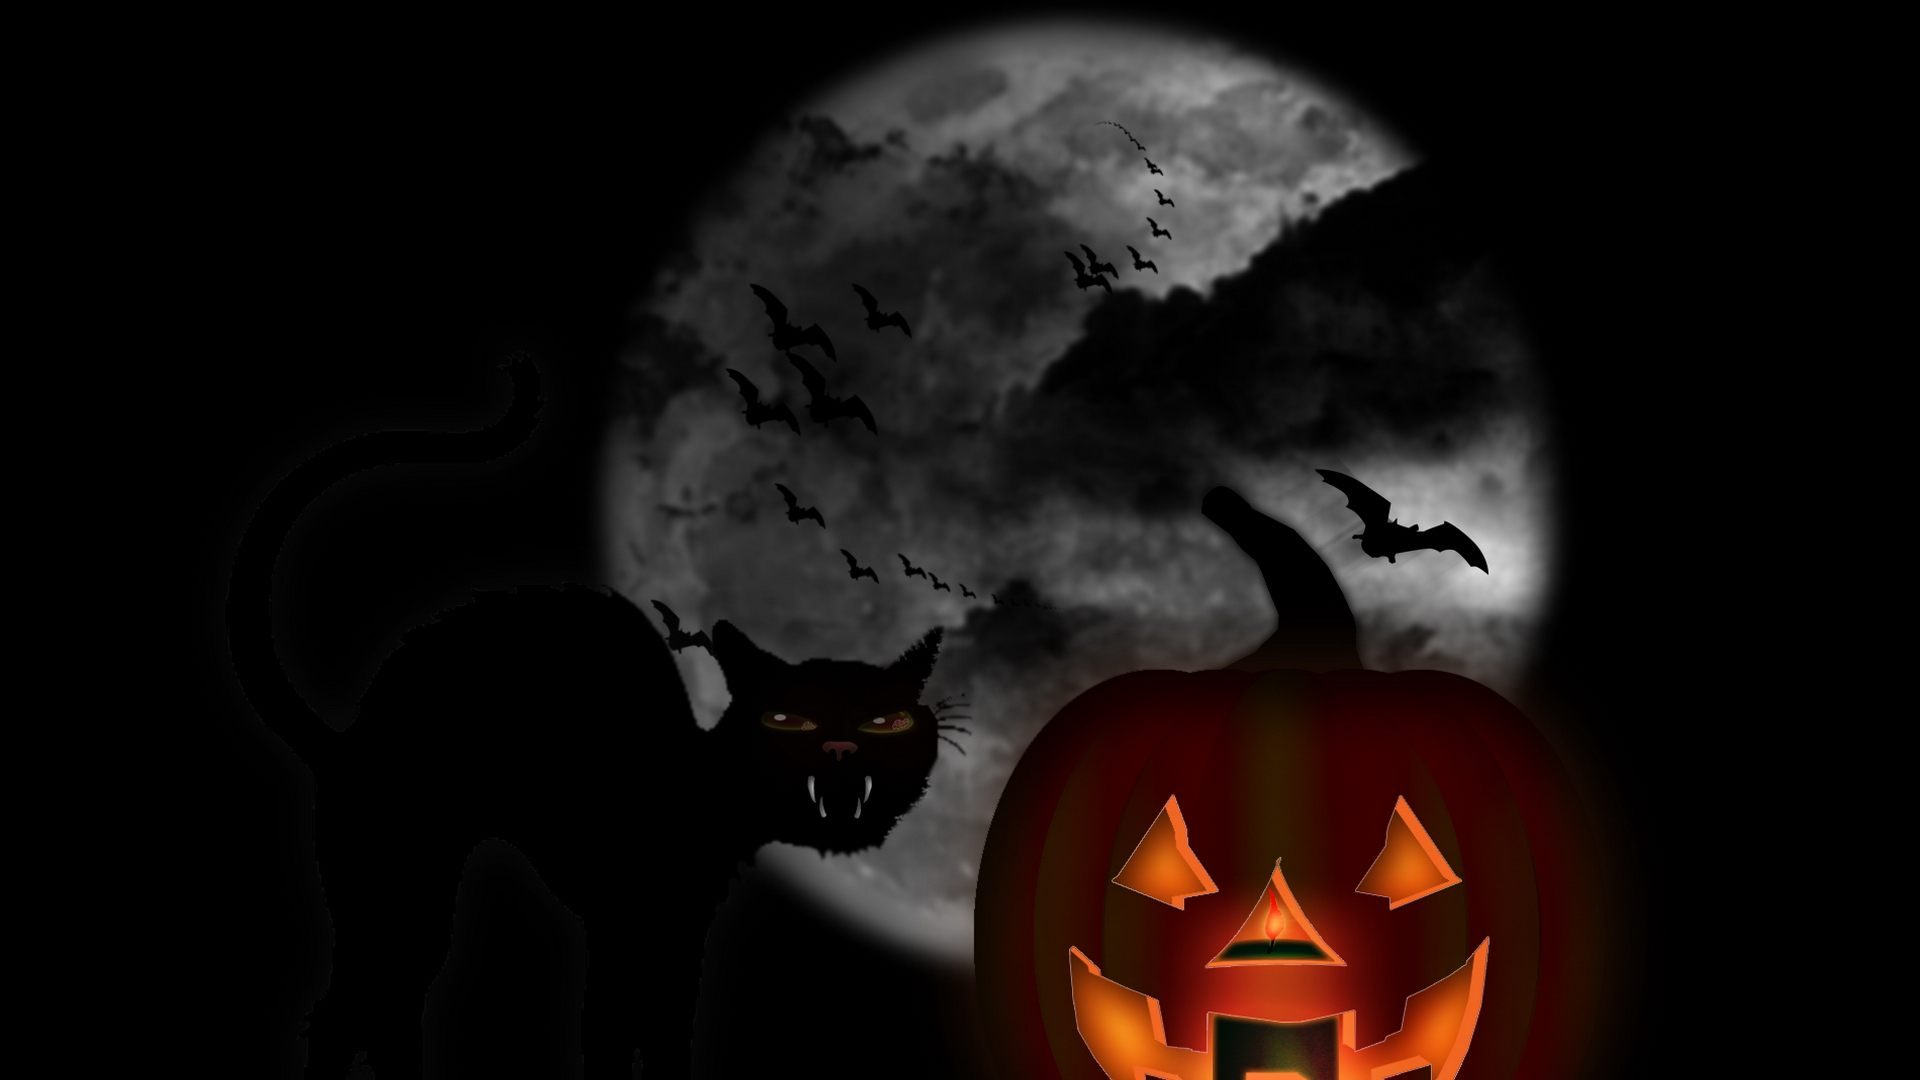 Noche de halloween 3d 1920x1080 fondos de pantalla y - Scary halloween screensavers animated ...